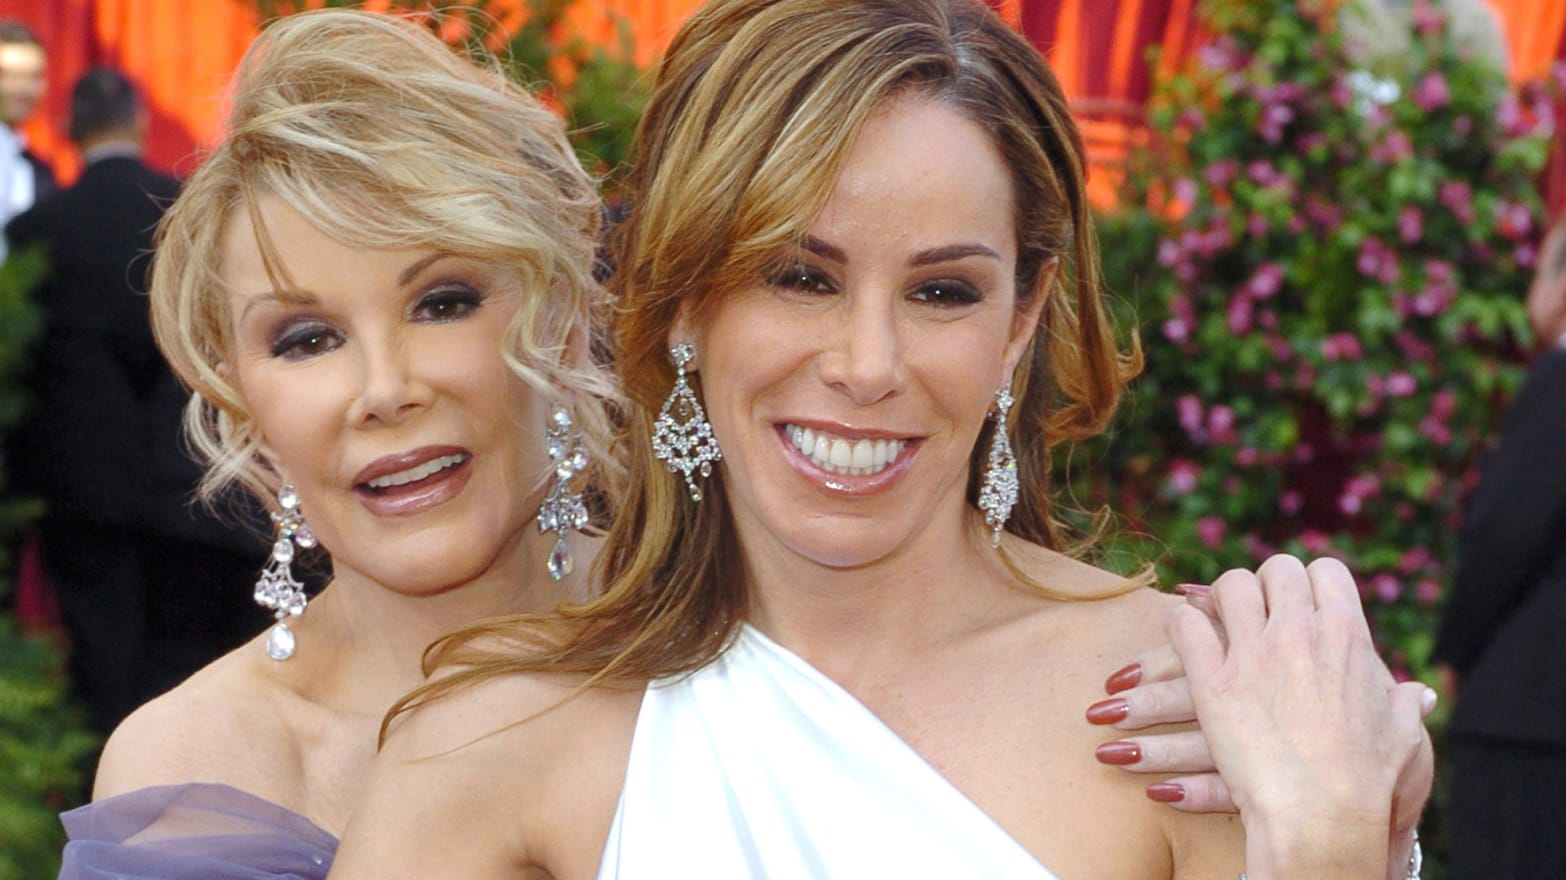 Melissa Rivers Nude Photos 1